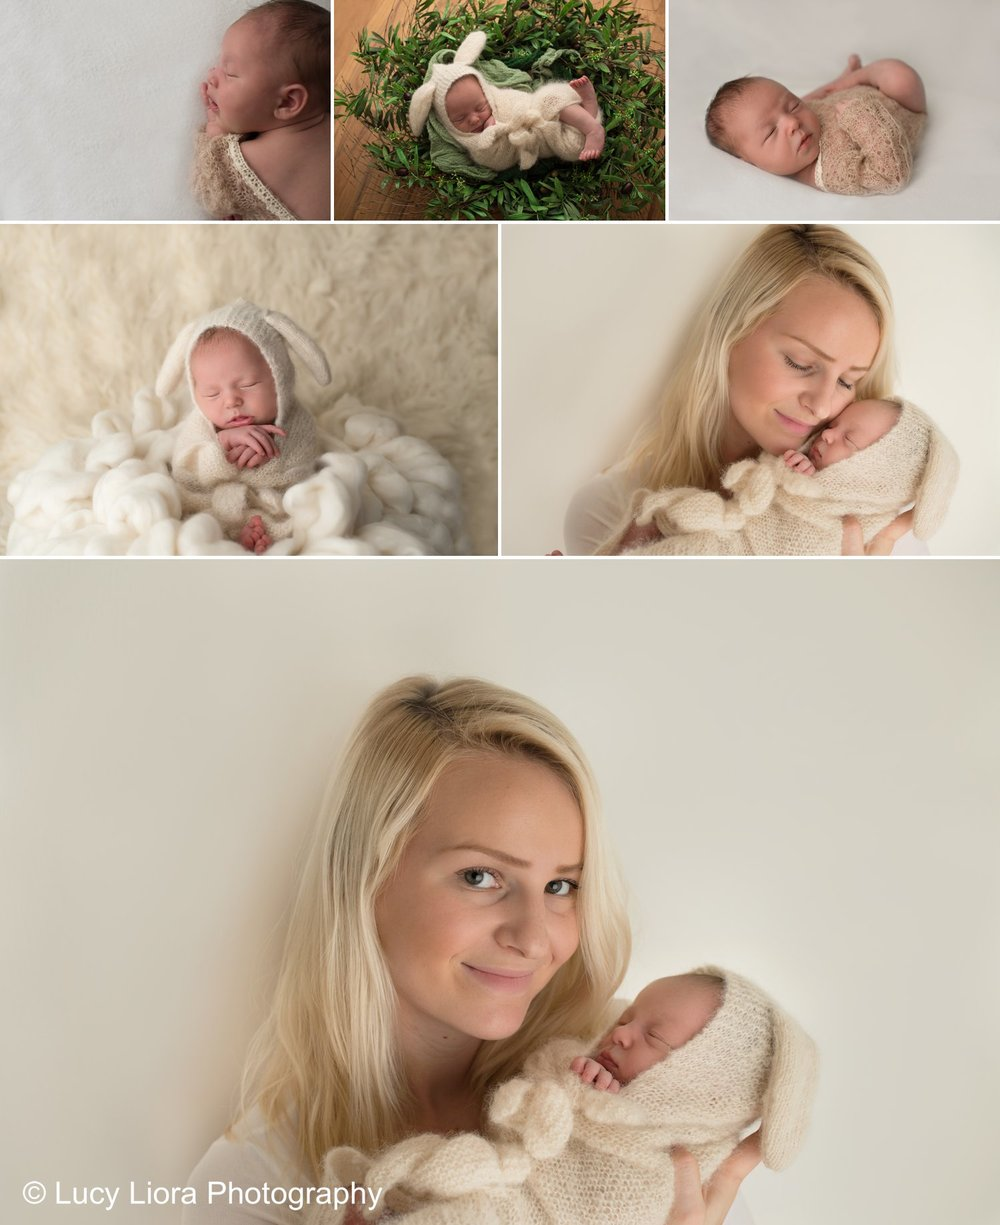 arcadia-boutique-newborn-photography-minime